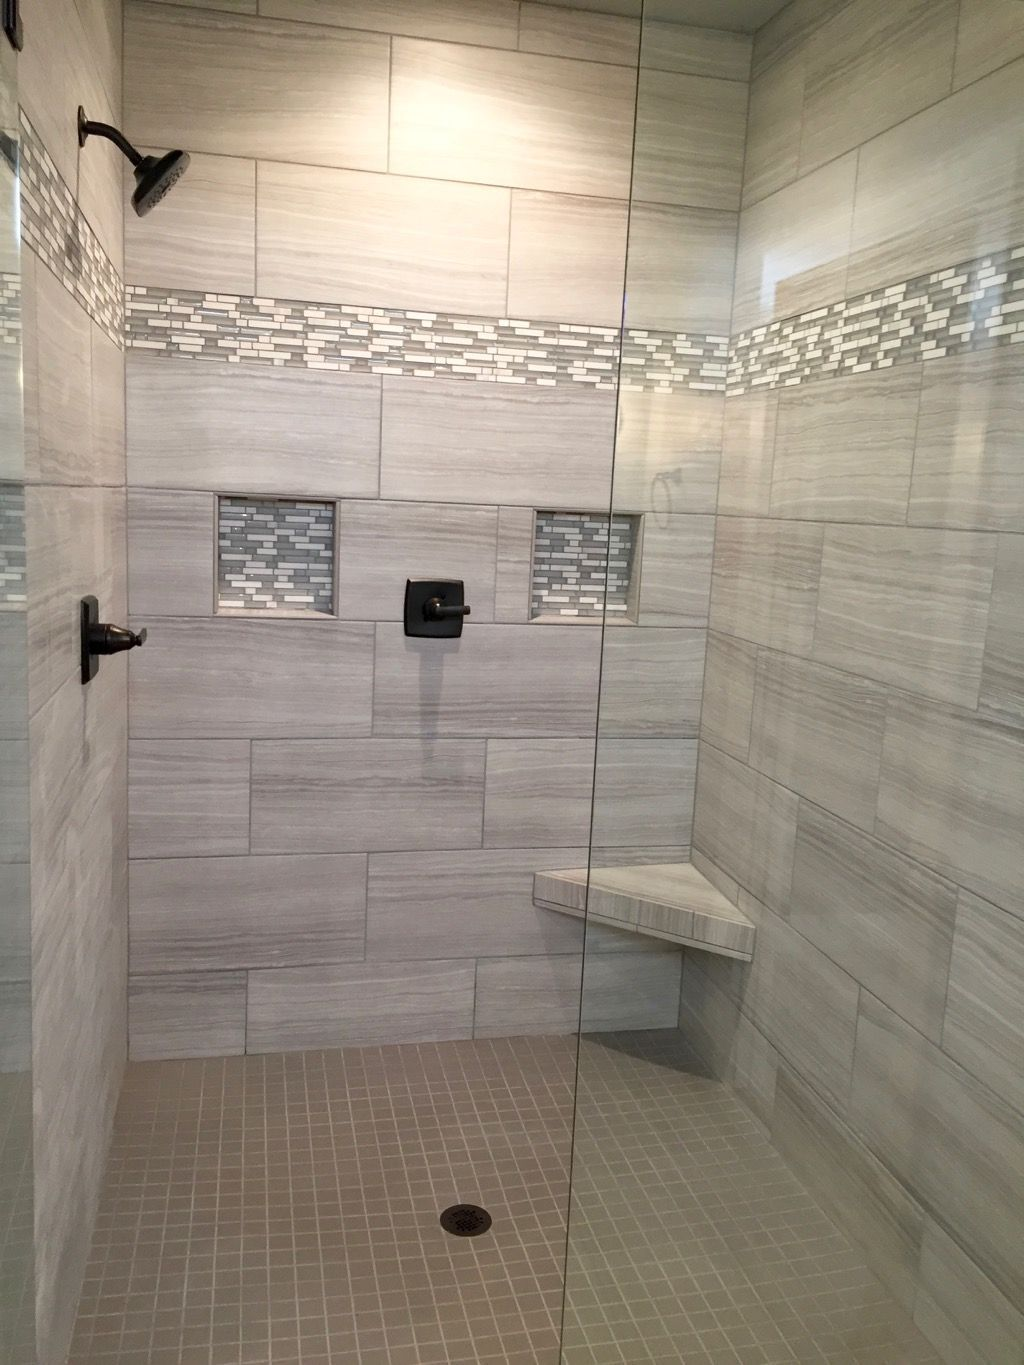 20 Best Bathroom Tile Patterns Ideas With Guide How To Place It Best Home Remodel Luxury Bathroom Tiles Bathroom Remodel Shower Small Master Bathroom